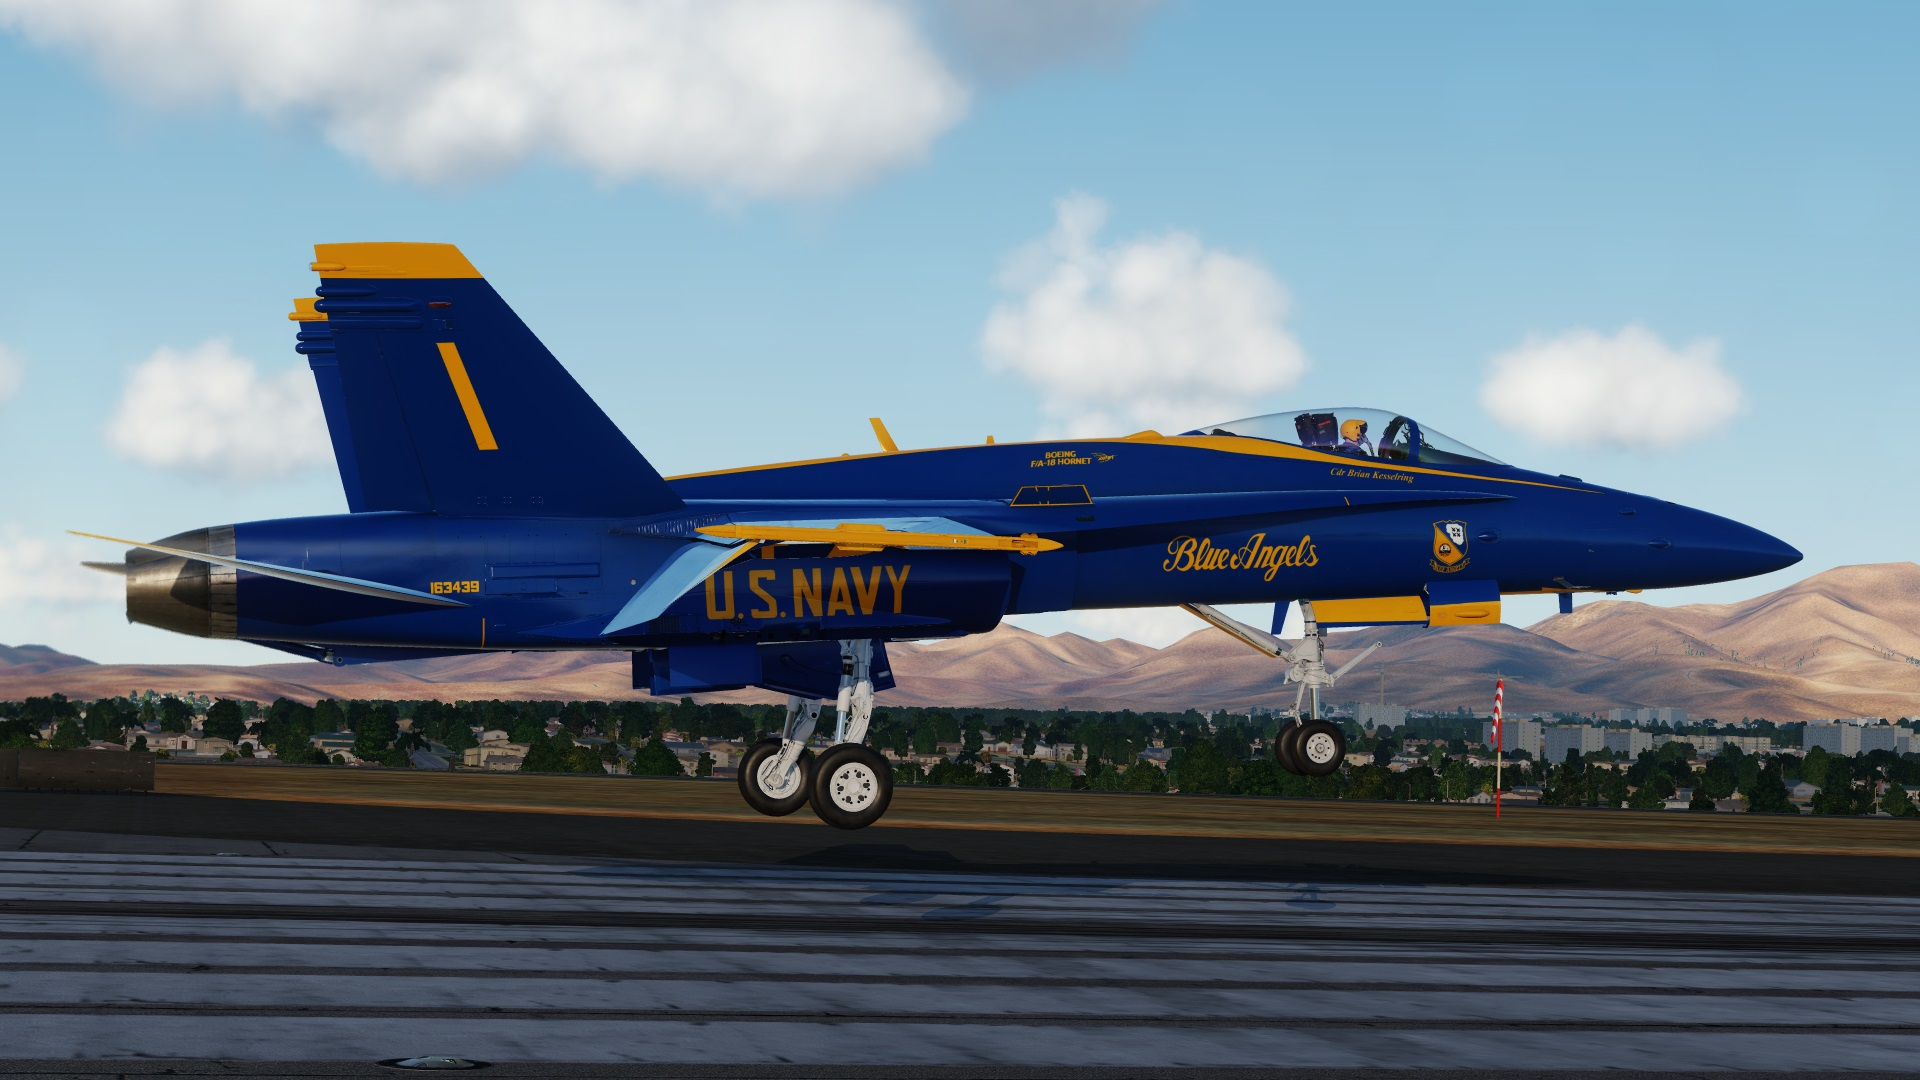 U.S. Navy Blue Angels - 2020